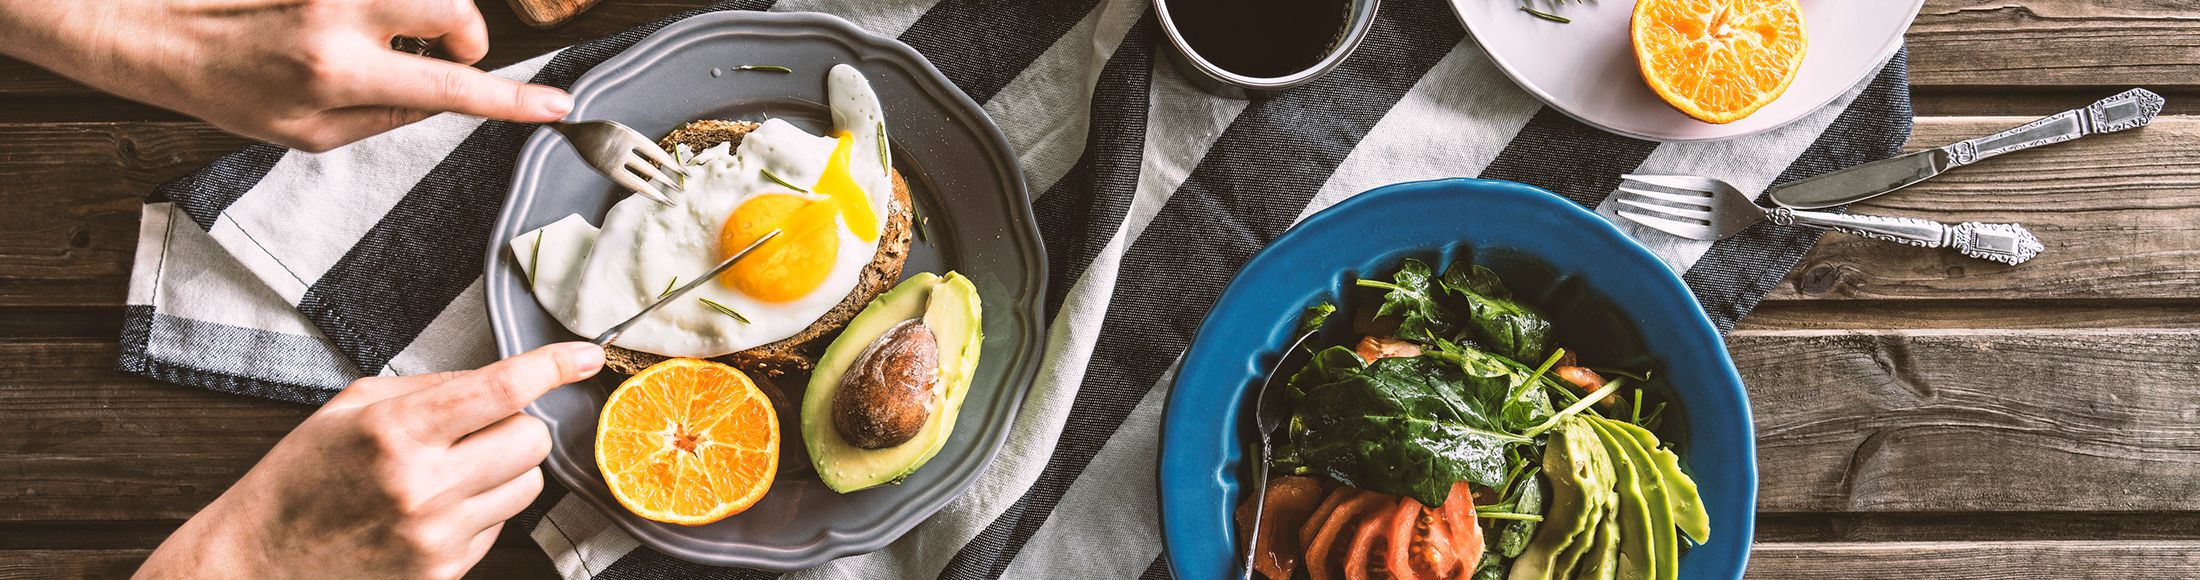 Brunch is the New Brunch <br />(Did it Ever Get Old?)